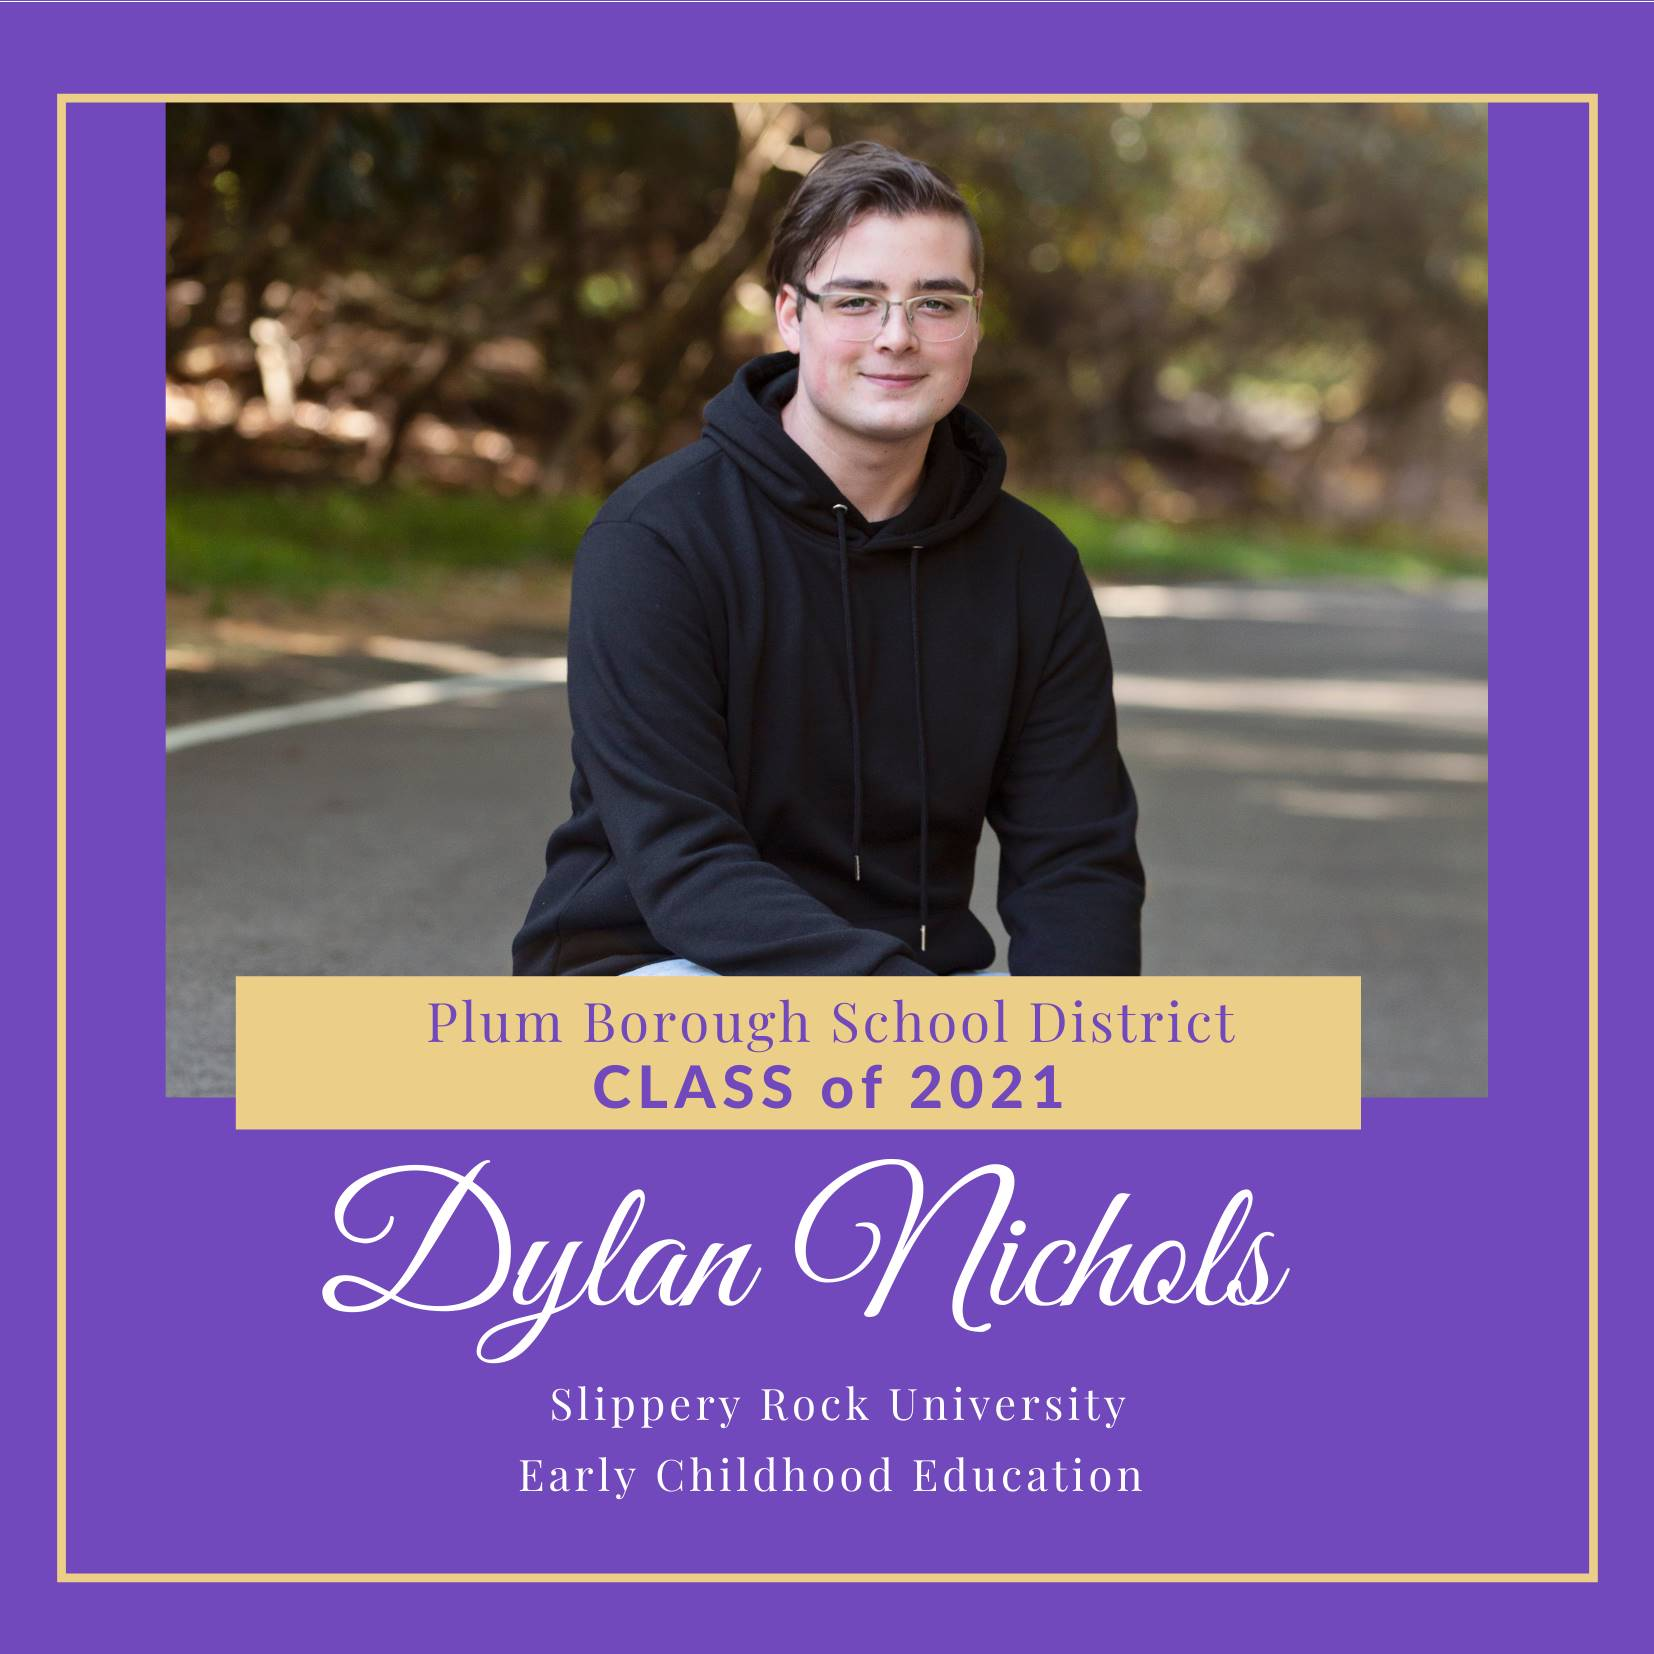 Congratulations to Dylan Nichols, Class of 2021!